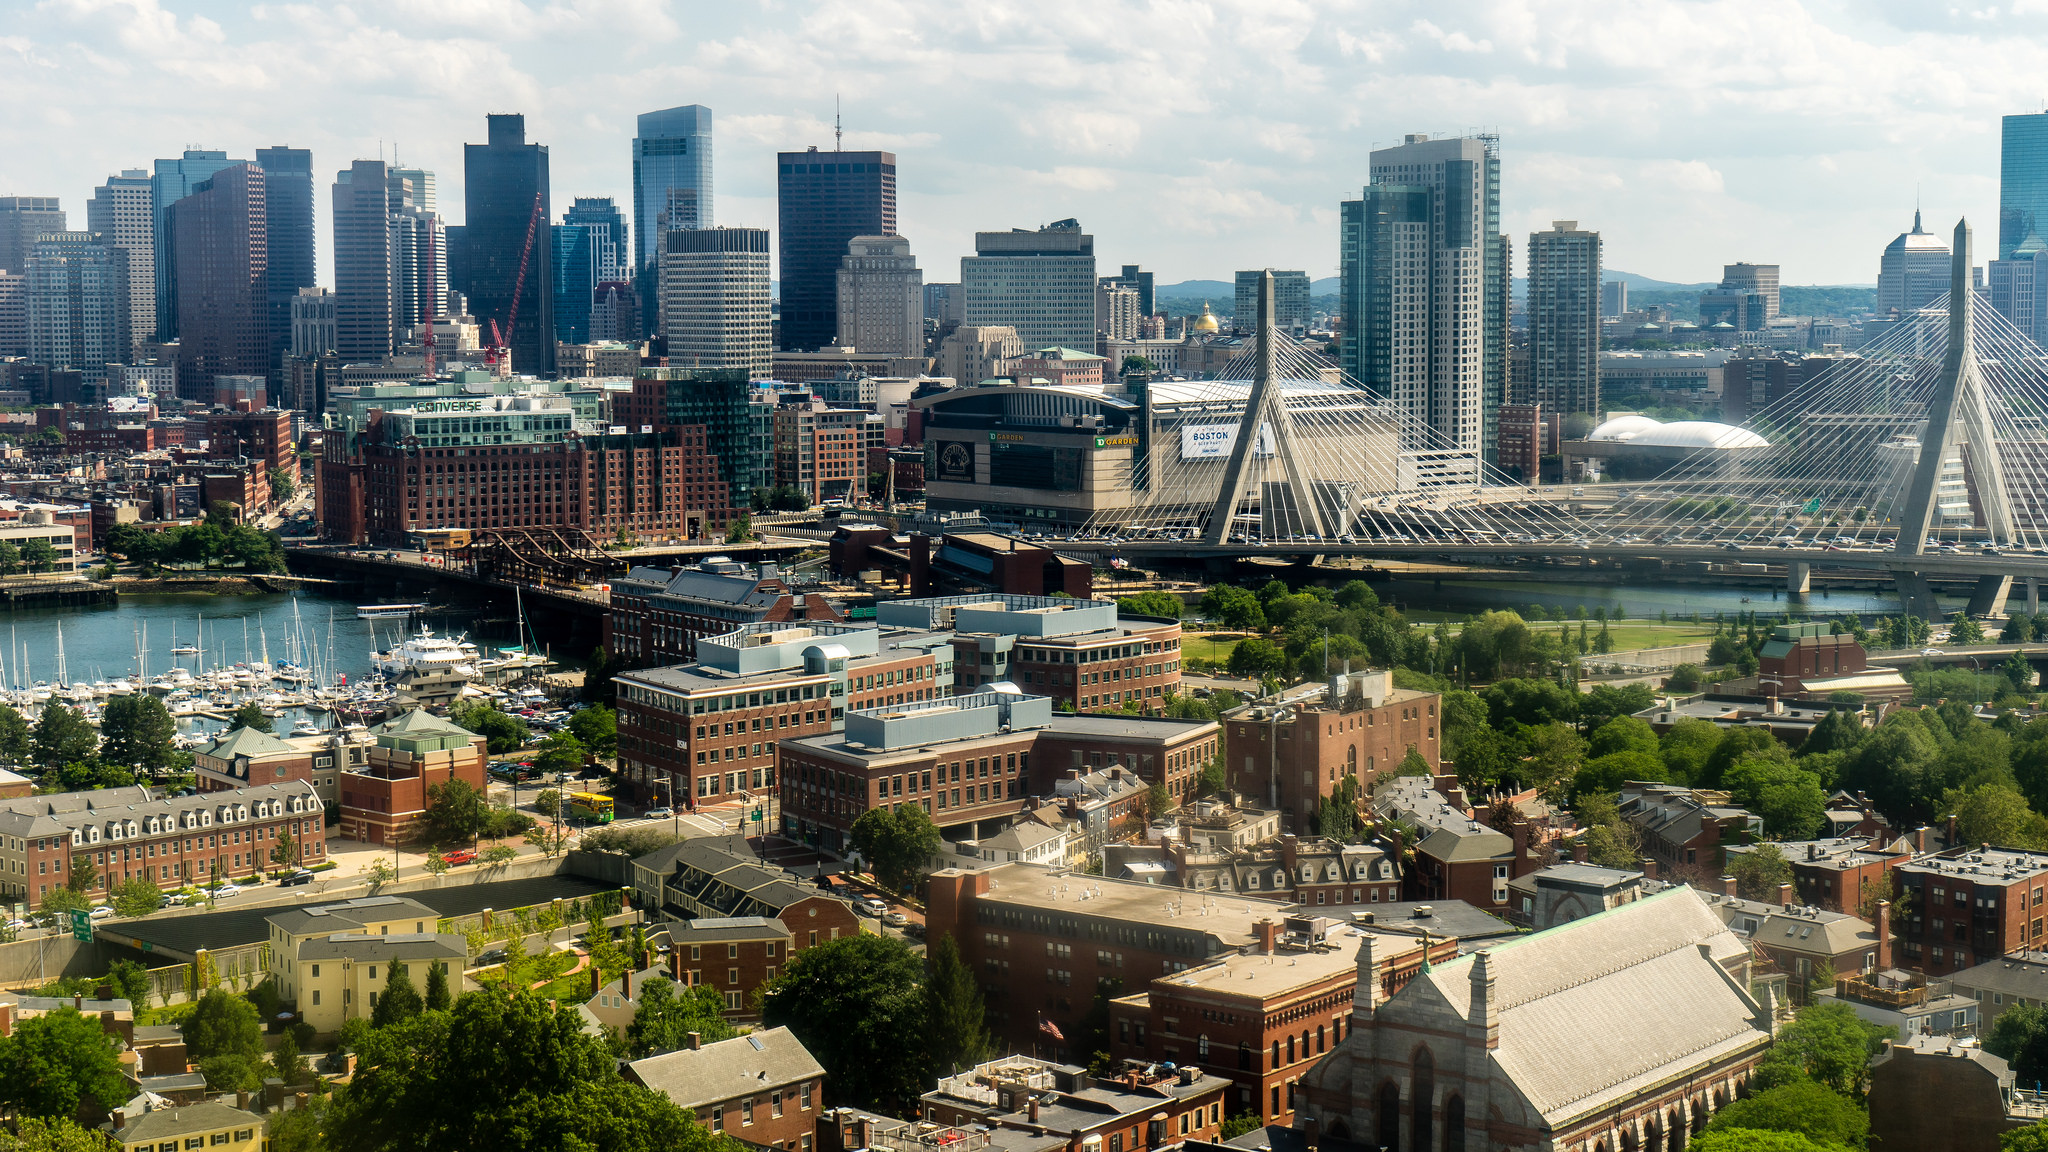 A view of Boston where the scum-sucking Patriots play football.